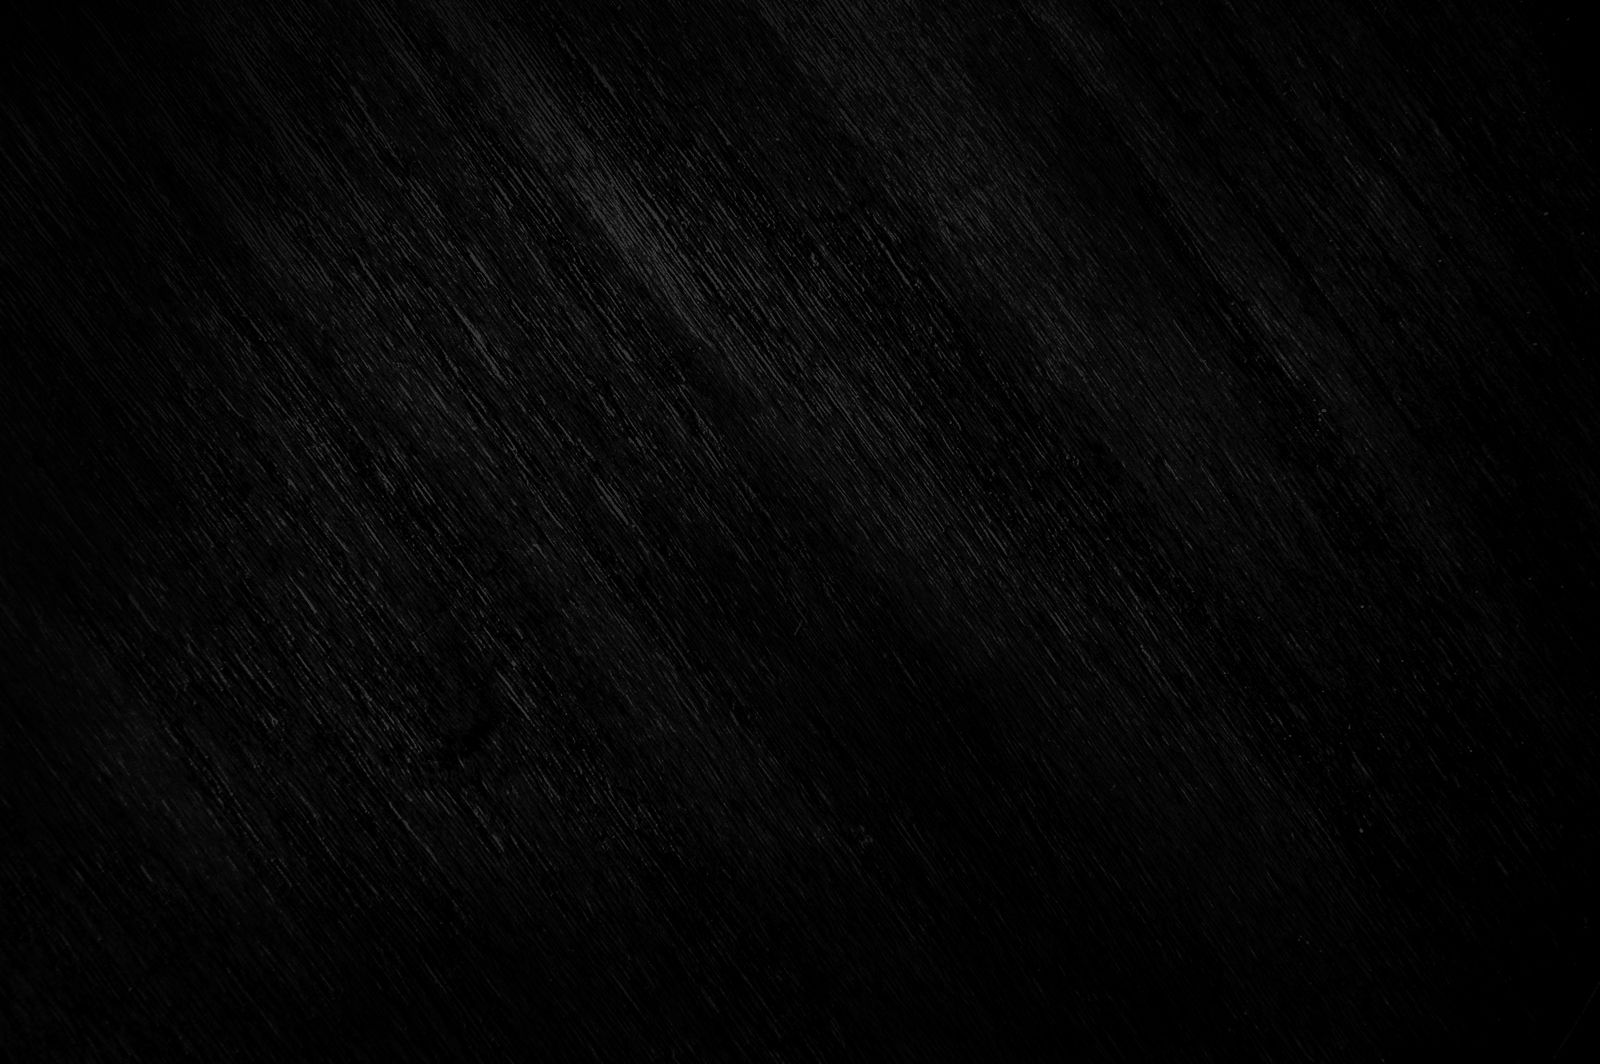 Black backgrounds photoshop dark pics photoshop 23884wall for Gray and white wallpaper designs